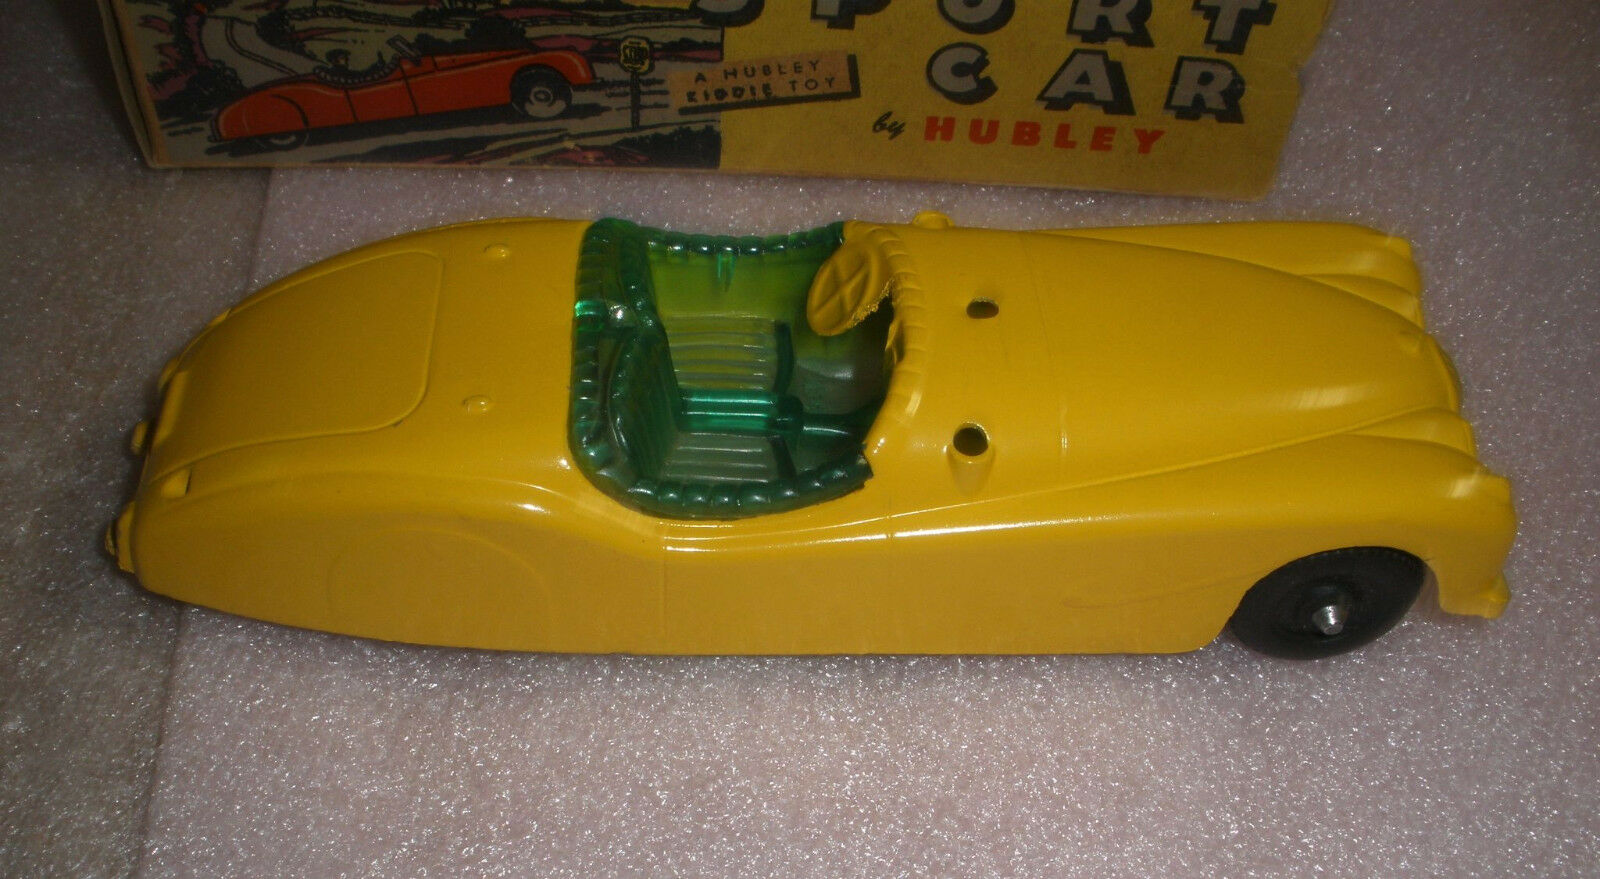 Hubbley Hubbley Hubbley Metal Sport Car with box nice condition 354936